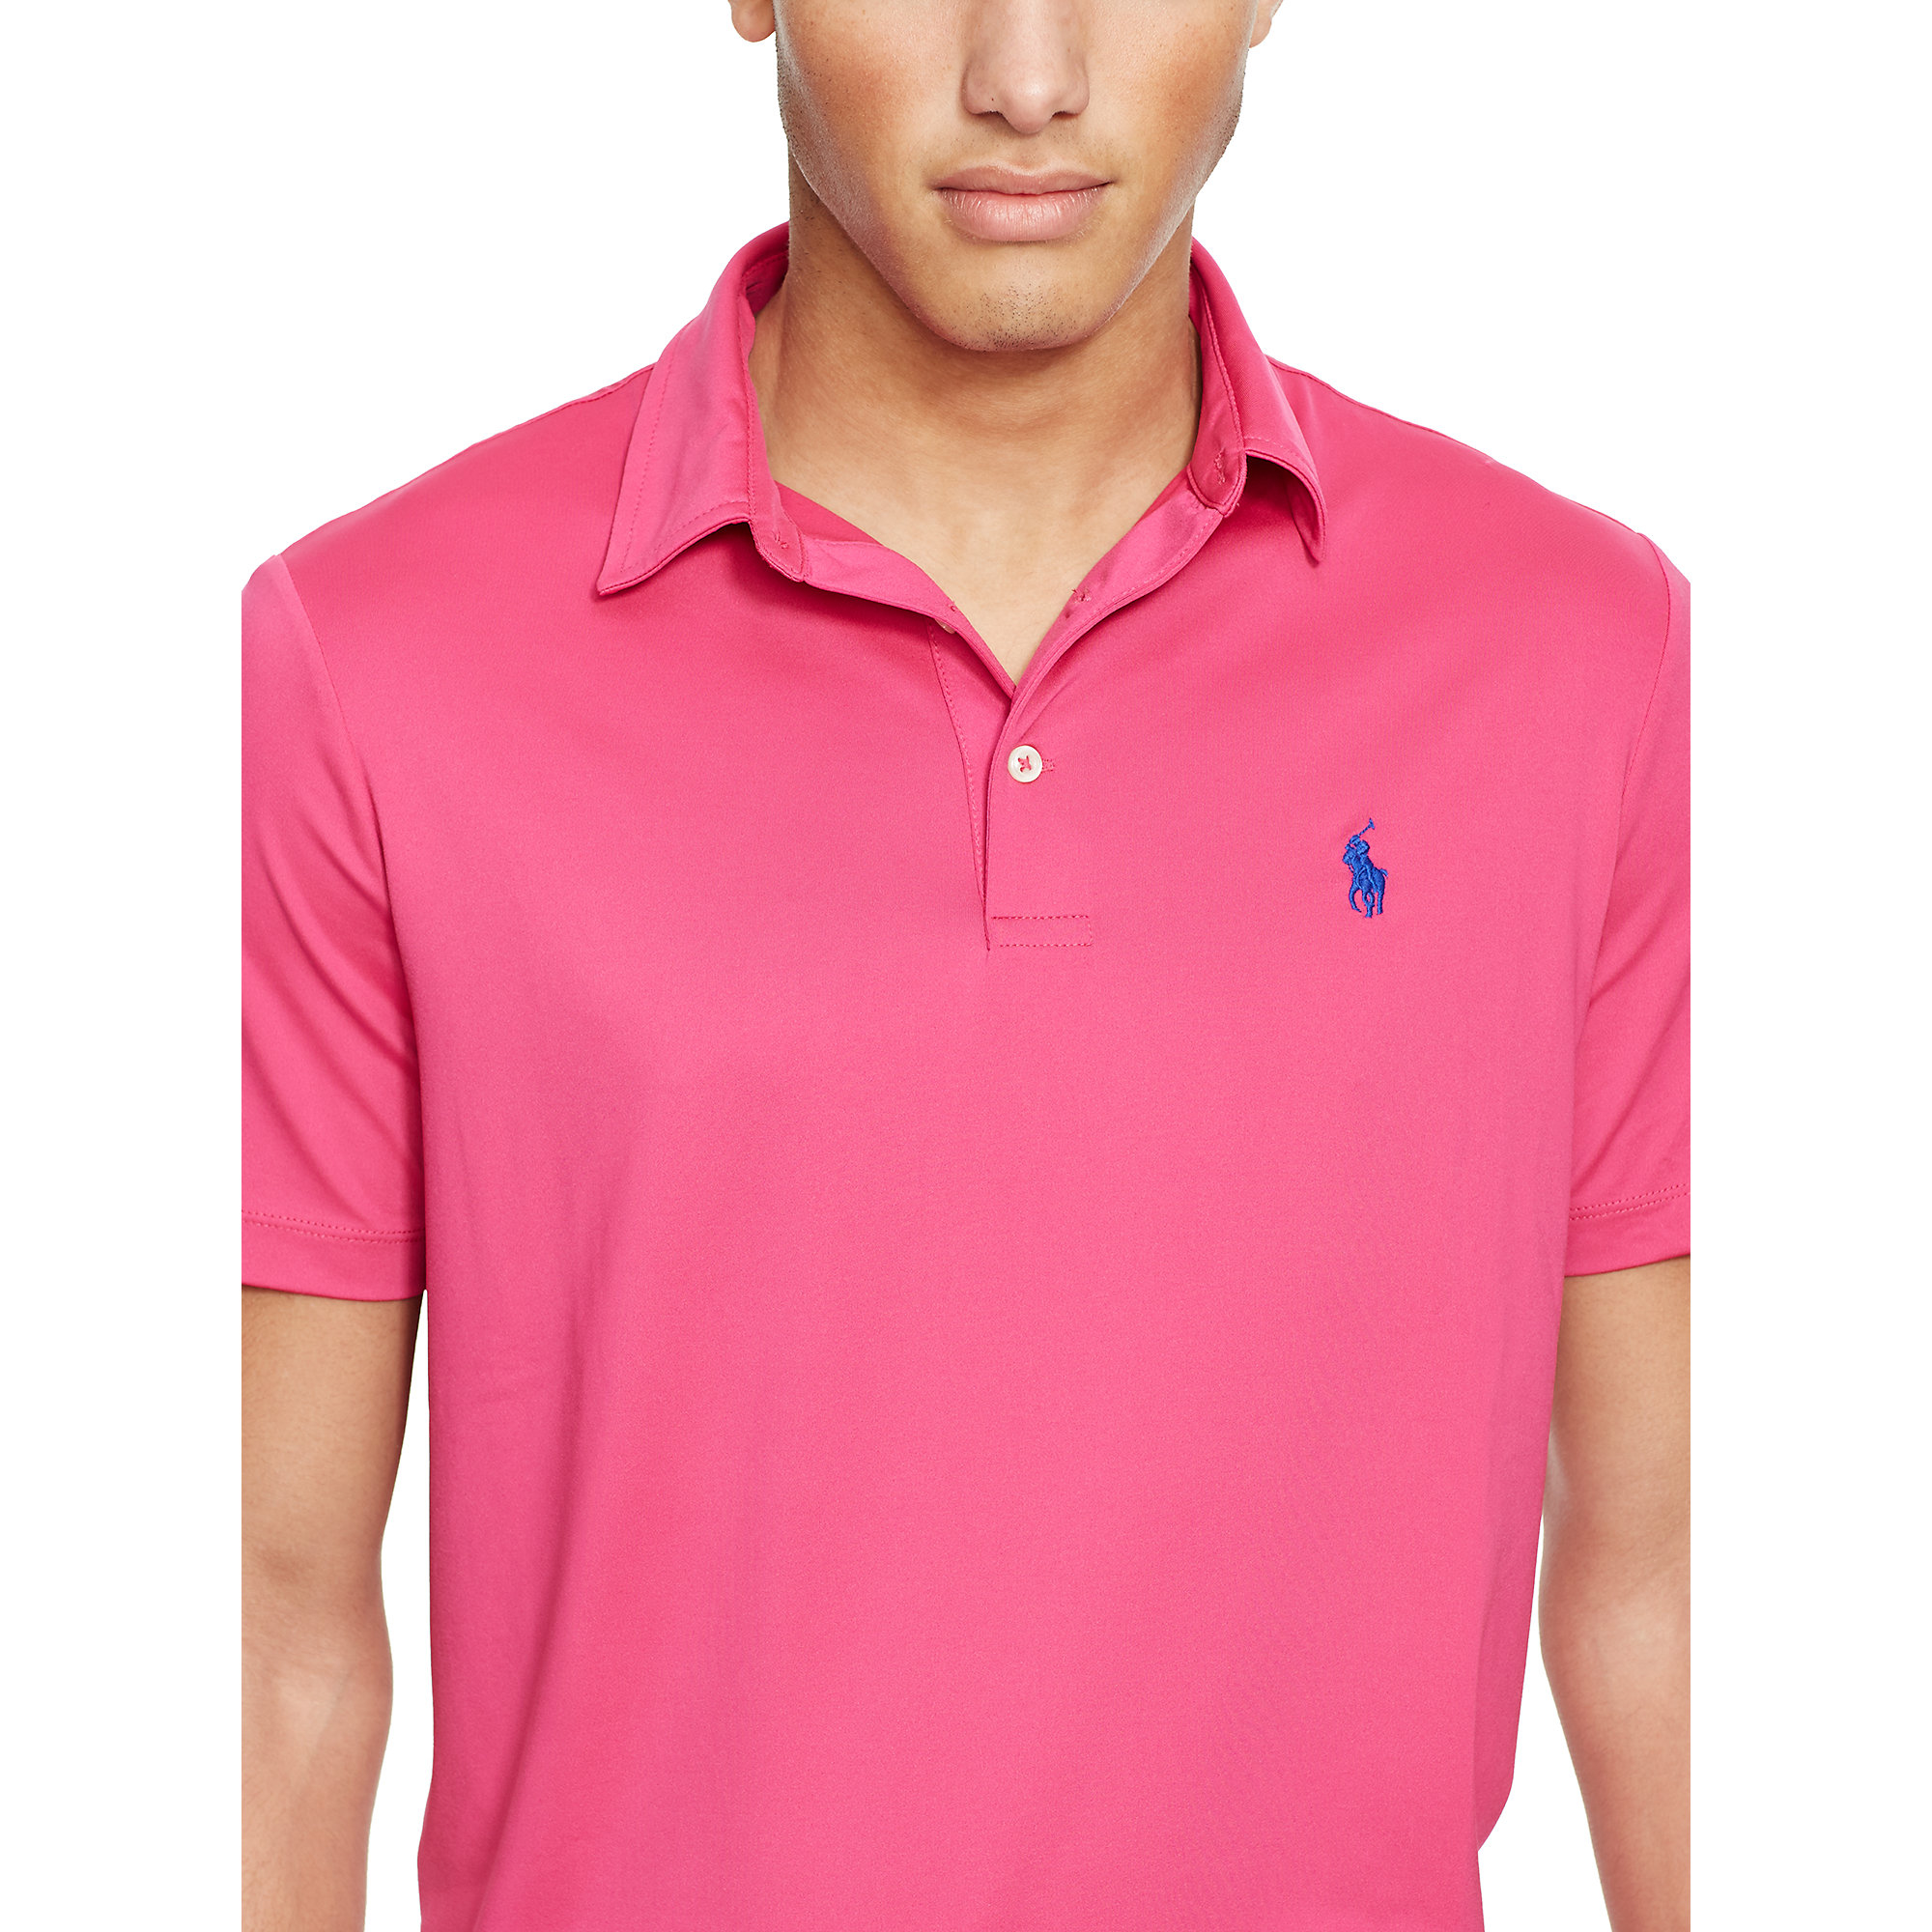 lyst polo ralph lauren custom fit performance polo in pink for men. Black Bedroom Furniture Sets. Home Design Ideas